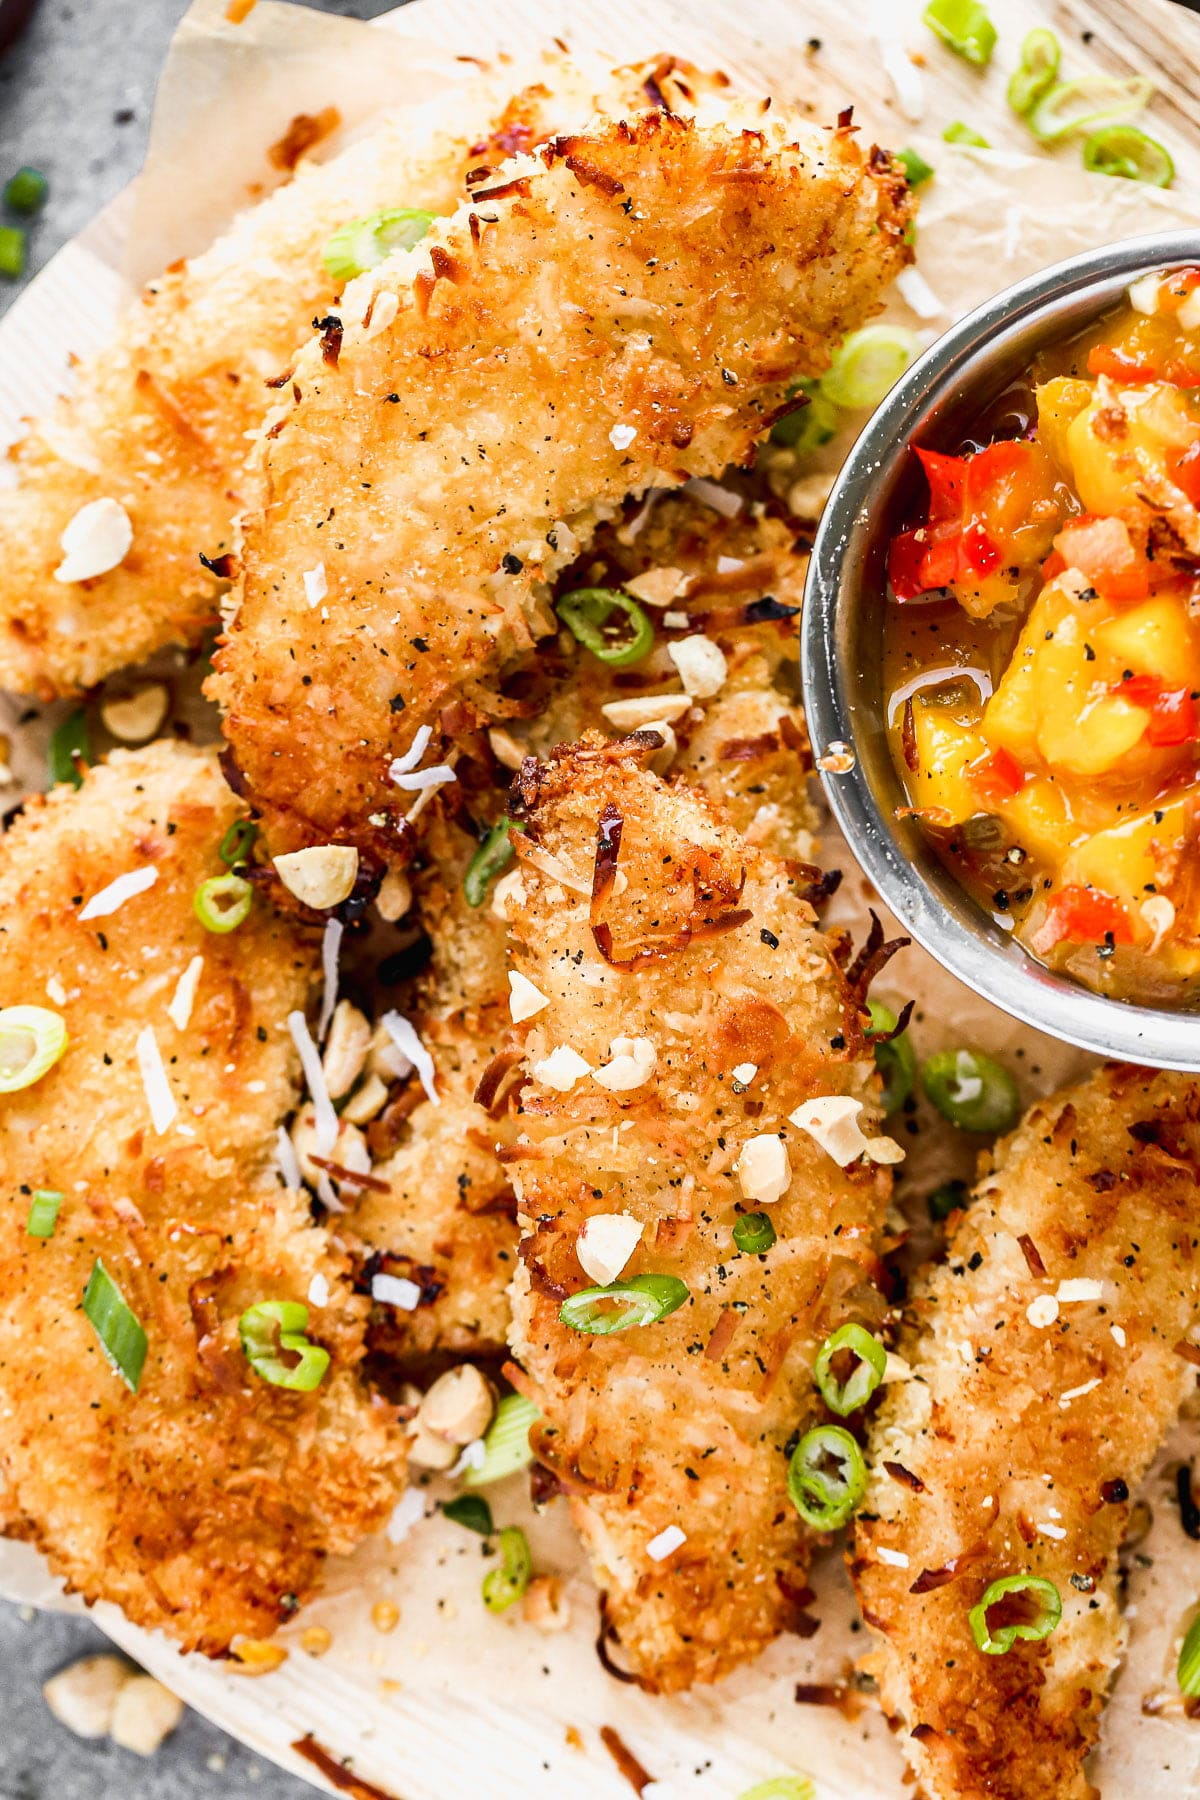 Let's all satisfy the kid in us with these ultra crispy, completely irresistible Baked Coconut Chicken Tenders. We coat tender chicken in a light coconut and panko breading, bake them on a screaming hot baking sheet and then serve them with a quick warm mango salsa and a hot honey drizzle.